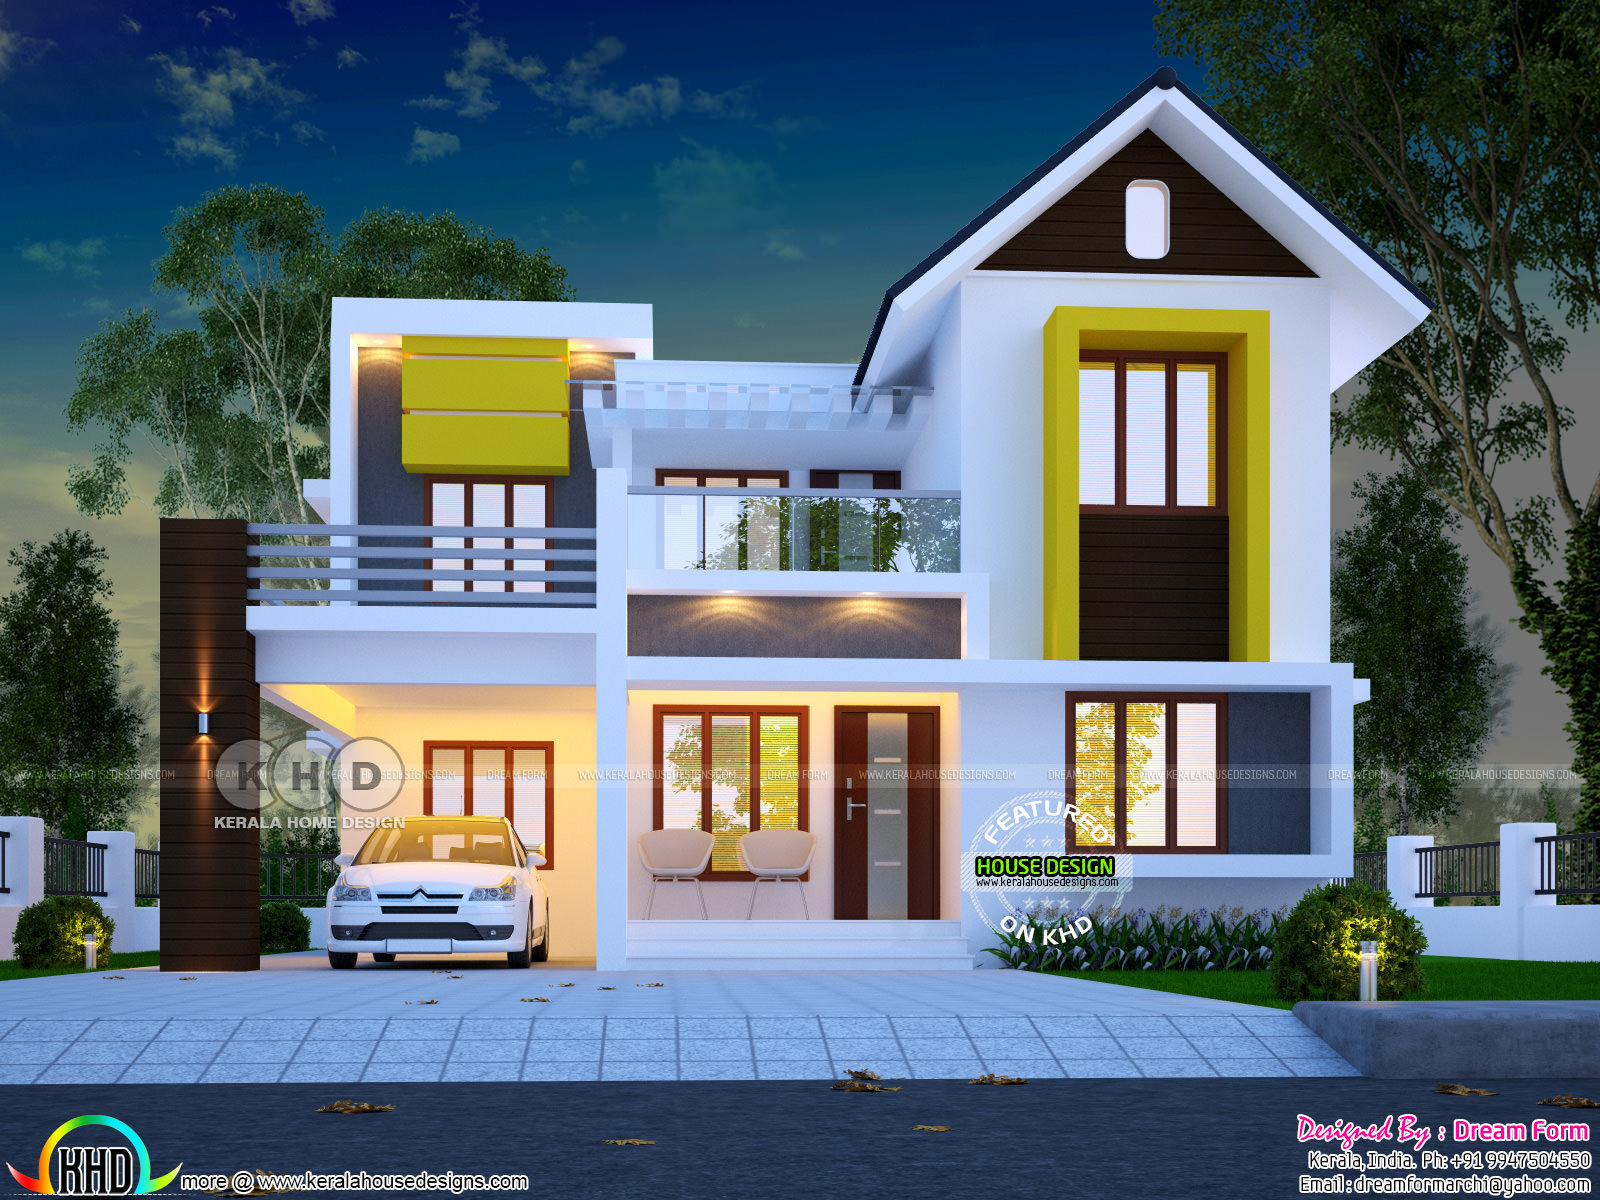 Cute And Dream Kerala Home Design 1600 Sq Ft Kerala Home